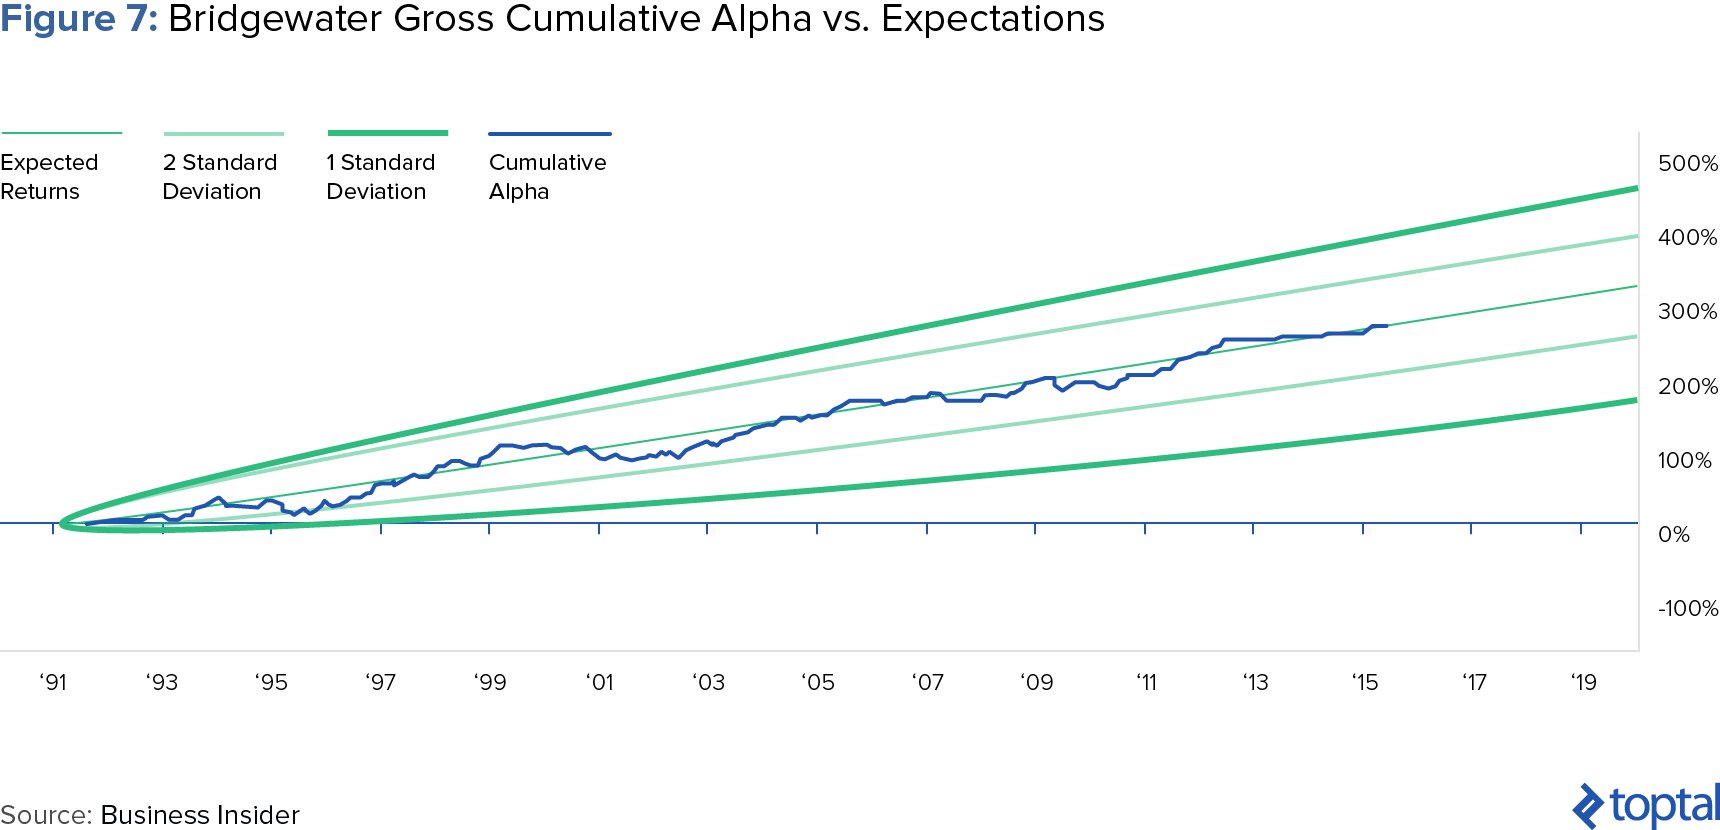 Figure 7: Bridgewater Gross Cumulative Alpha vs. Expectations